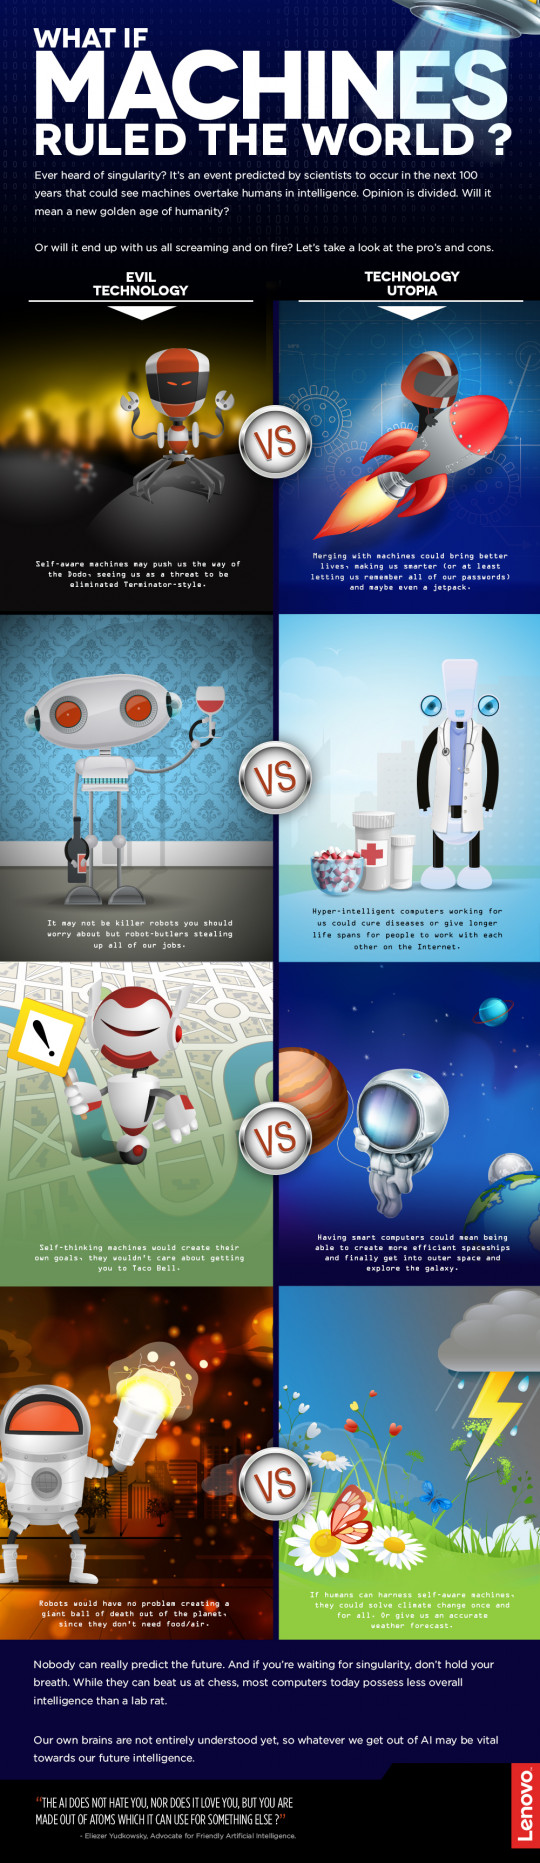 What If Machines Ruled the World?